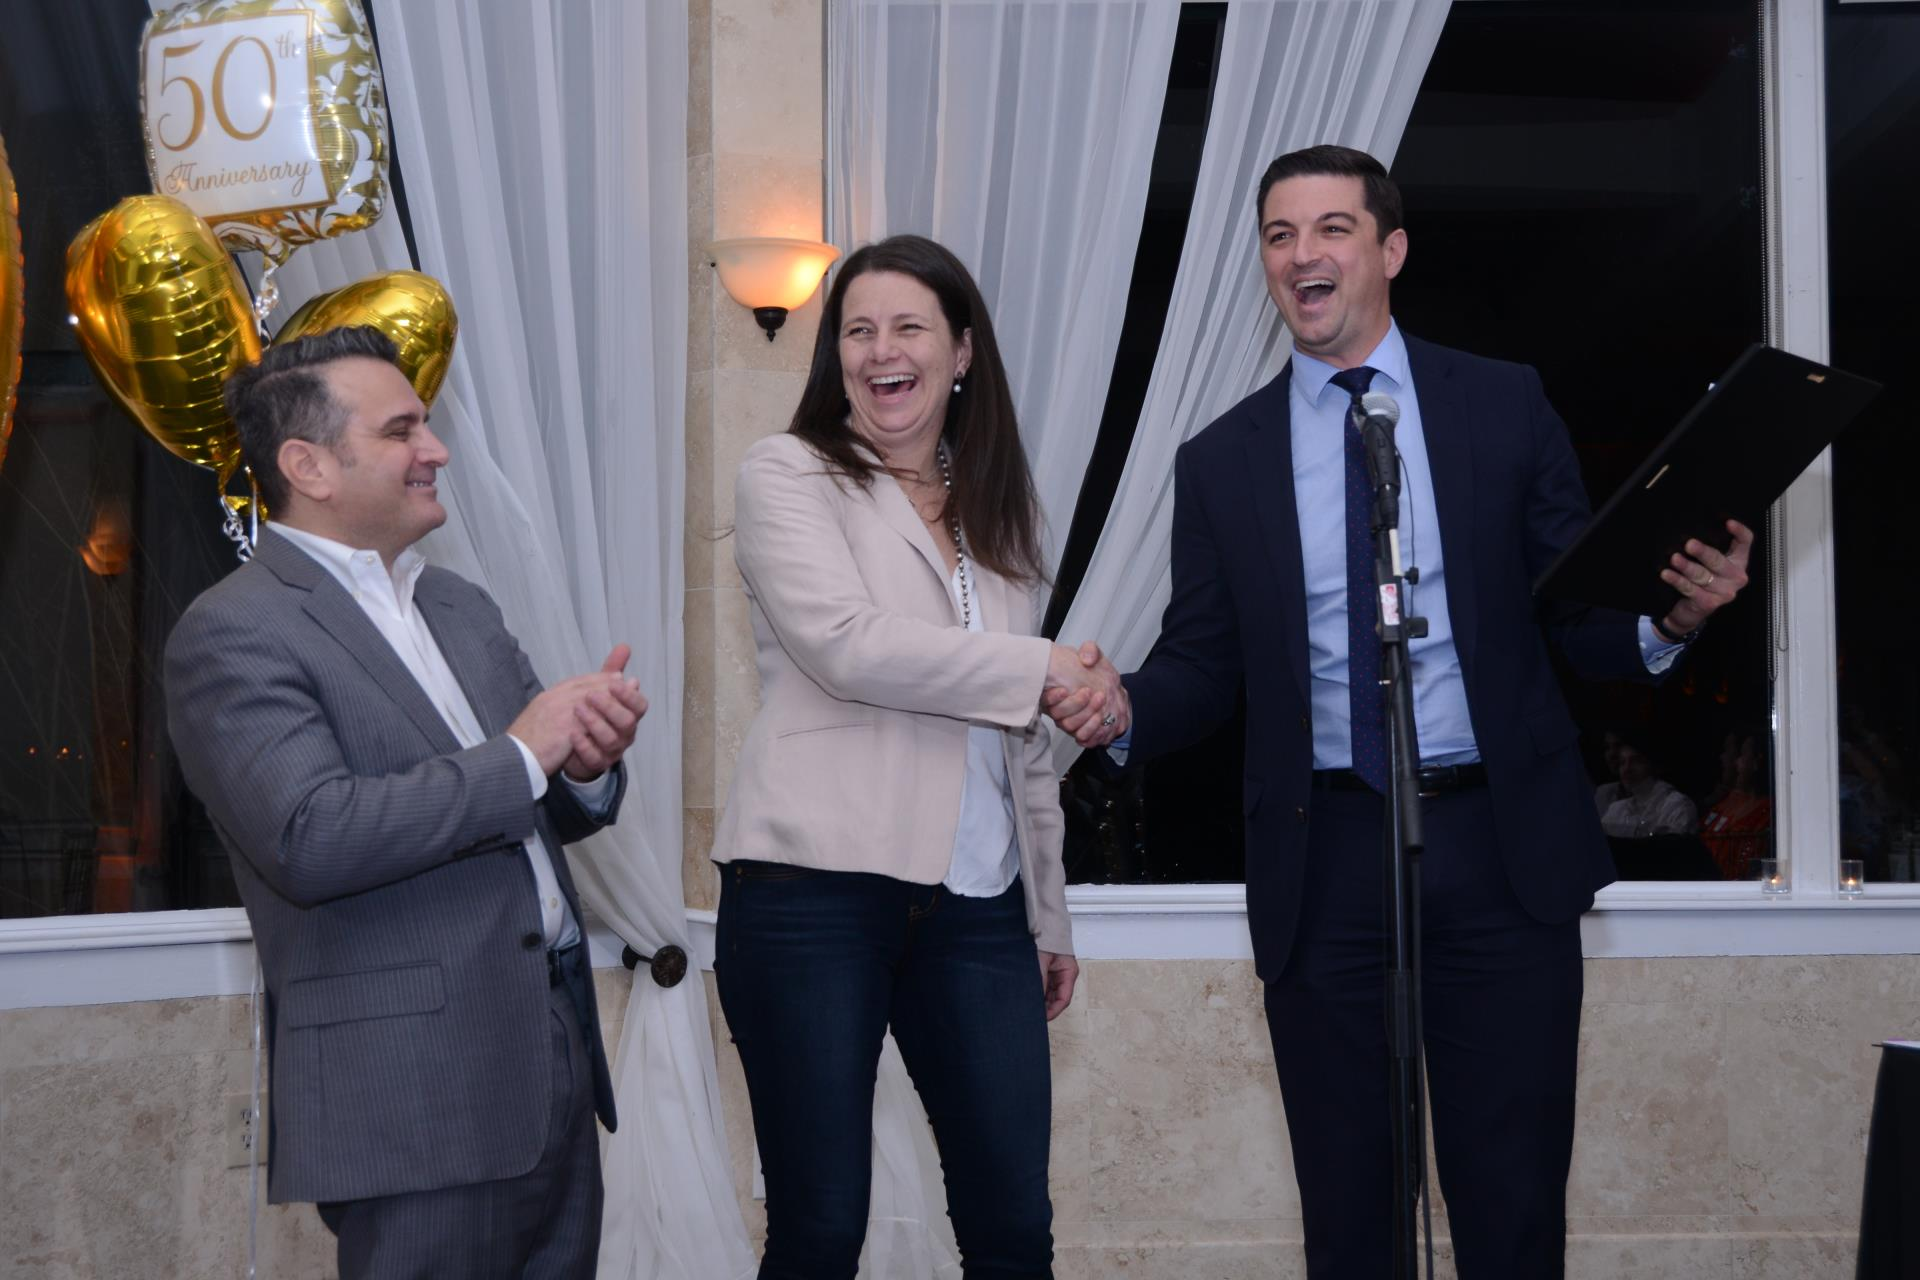 Midtown Neighbors President, Tony Rizzuto, Councilmembers Ide and Farokhi celebrate